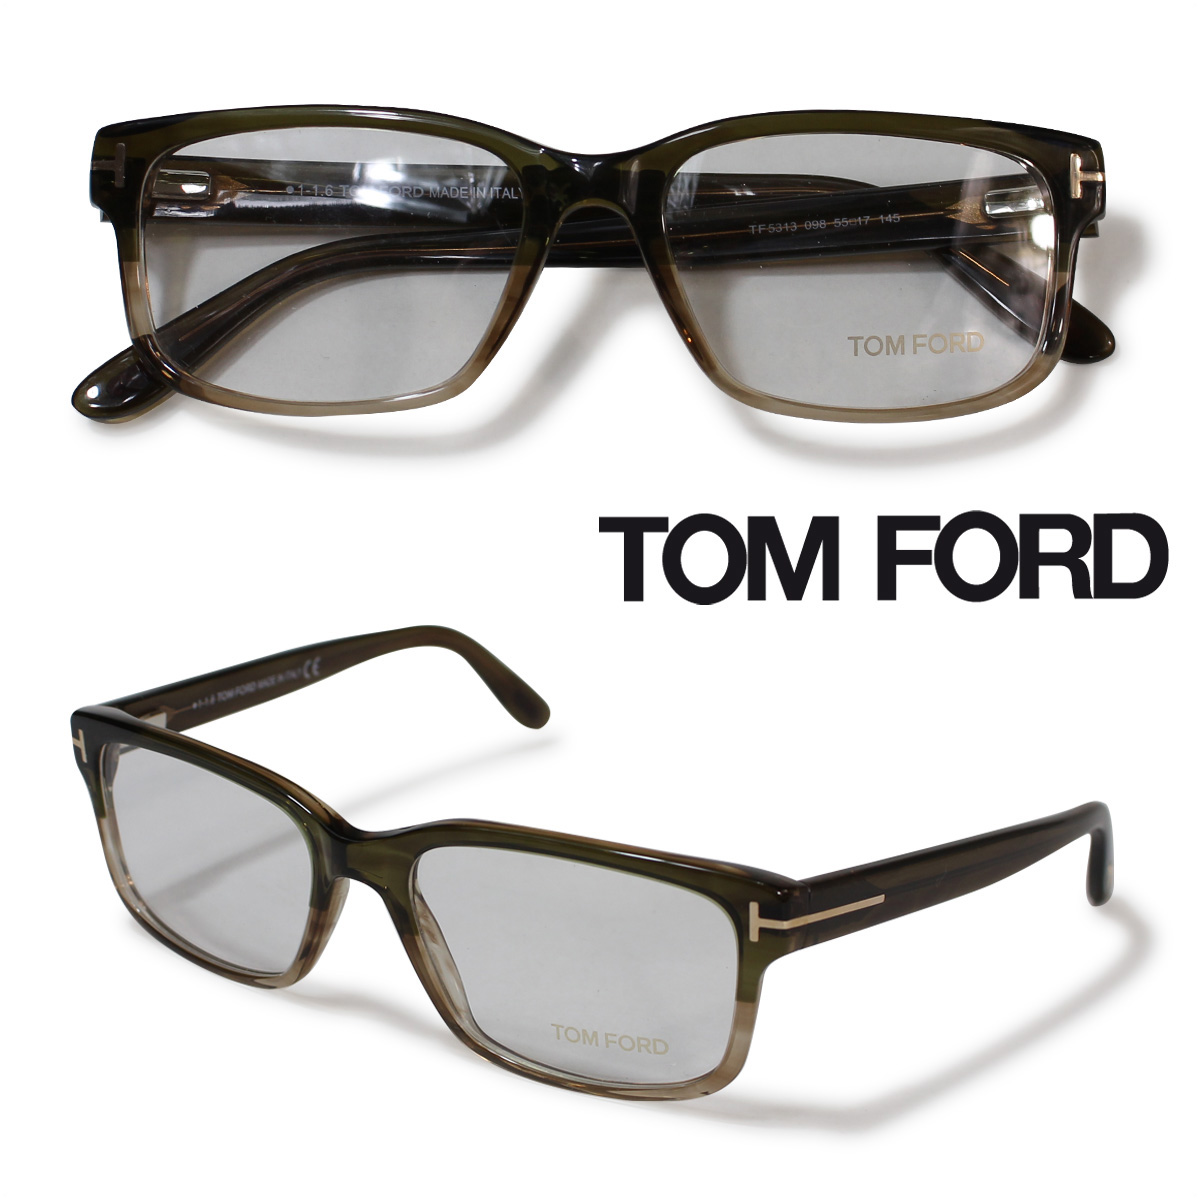 e481c8215da ... on the lens from the temple is decorated in Tom Ford features.  Furnished with hand-made in Italy by Marcolin eyewear Center even as  popular as good.